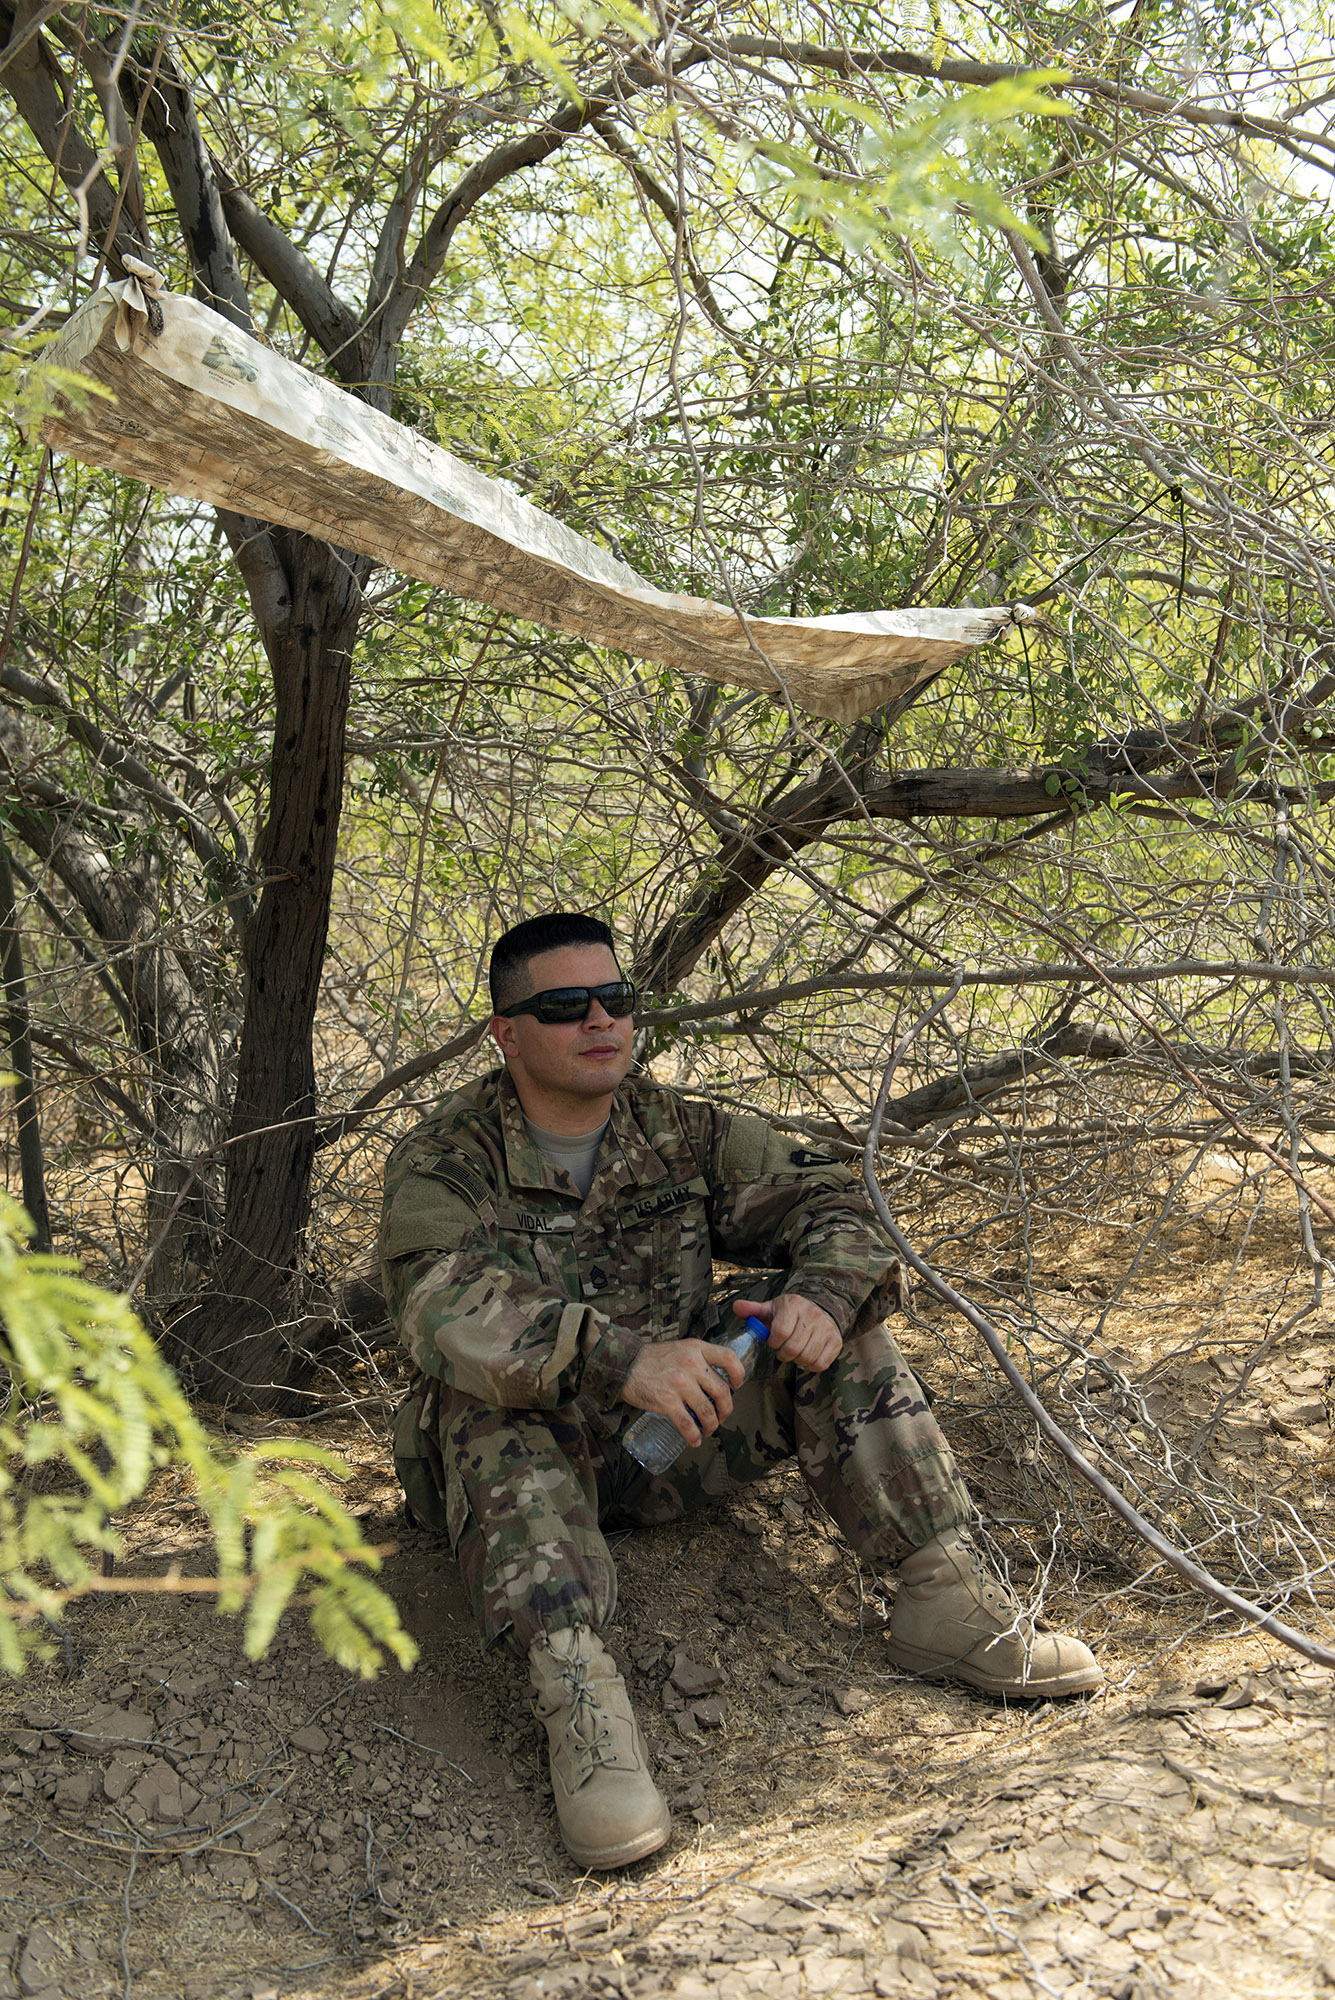 U.S. Army Sgt. 1st Class Amando Vidal, a field artillery firefinder radar operator with 3rd Battalion, 133rd Field Artillery Regiment, Texas National Guard, sits under a shaded shelter he created during survival skills training on Camp Lemonnier, Djibouti, Oct. 13, 2018. During this training, Vidal completed various tasks such as constructing a shelter, finding alternative water sources and signaling for rescue. (U.S. Air National Guard photo by Master Sgt. Sarah Mattison)